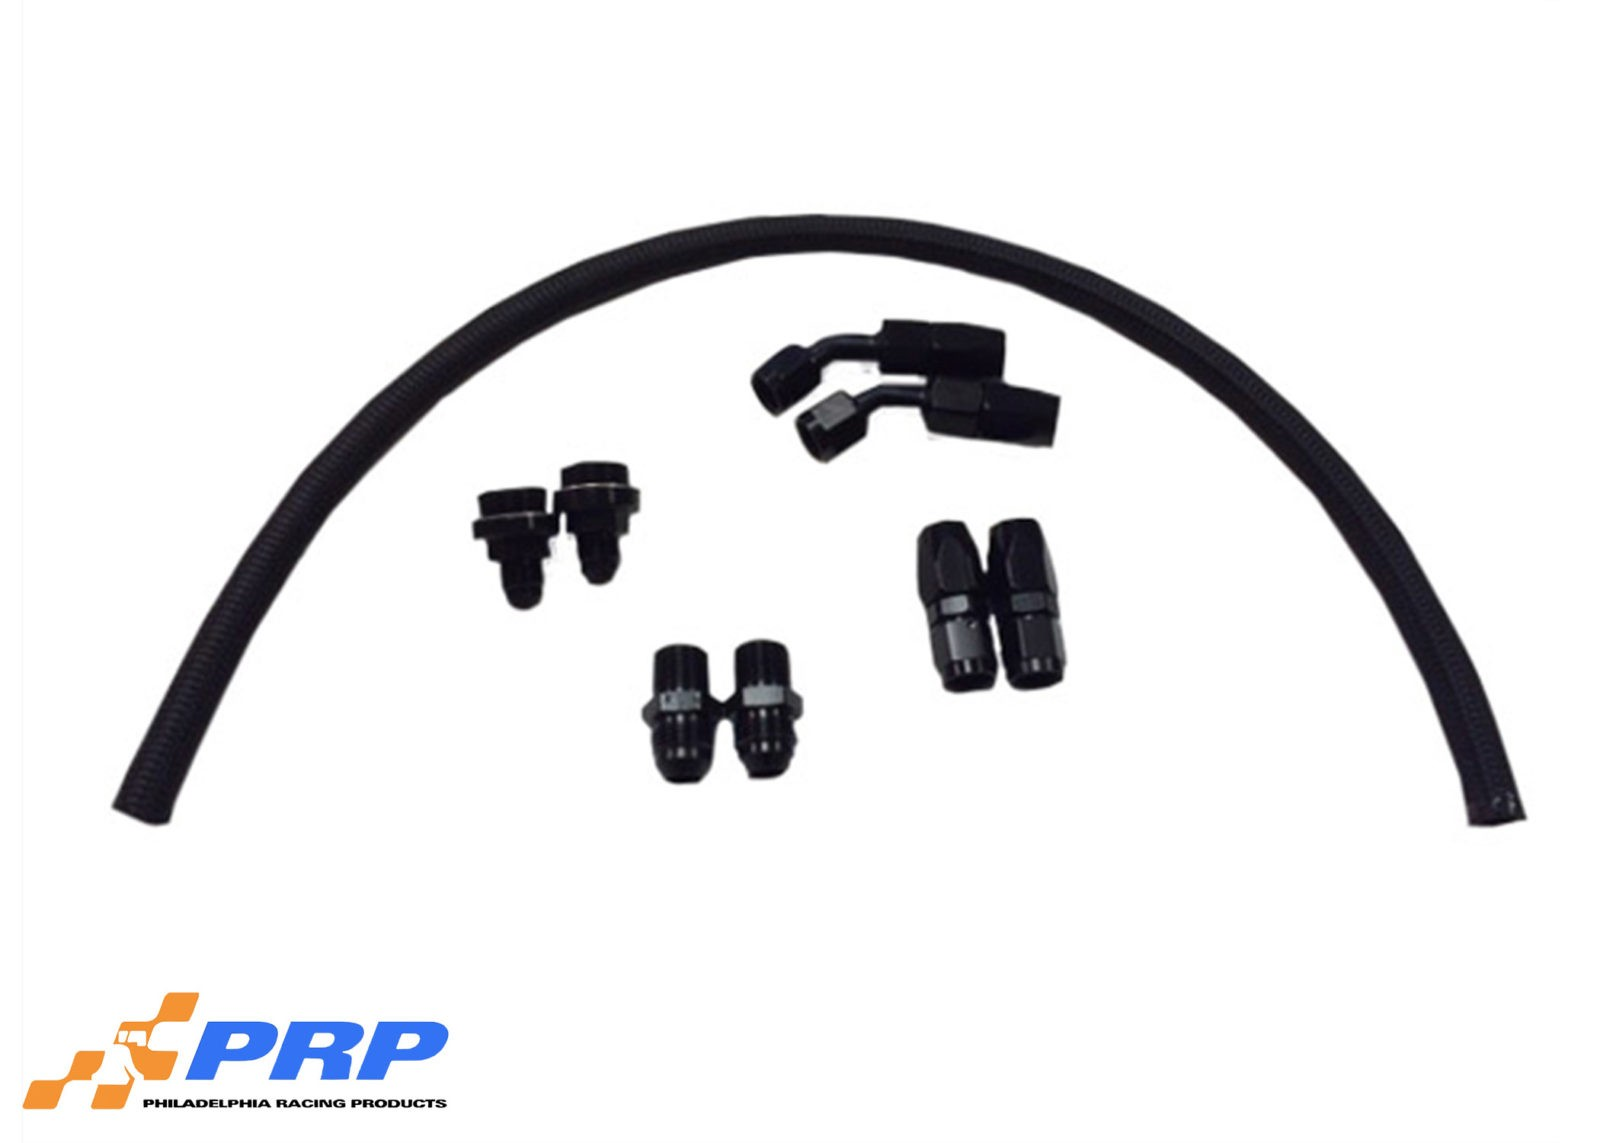 Black Regulator Plumbing Kits displayed made by PRP Racing Products